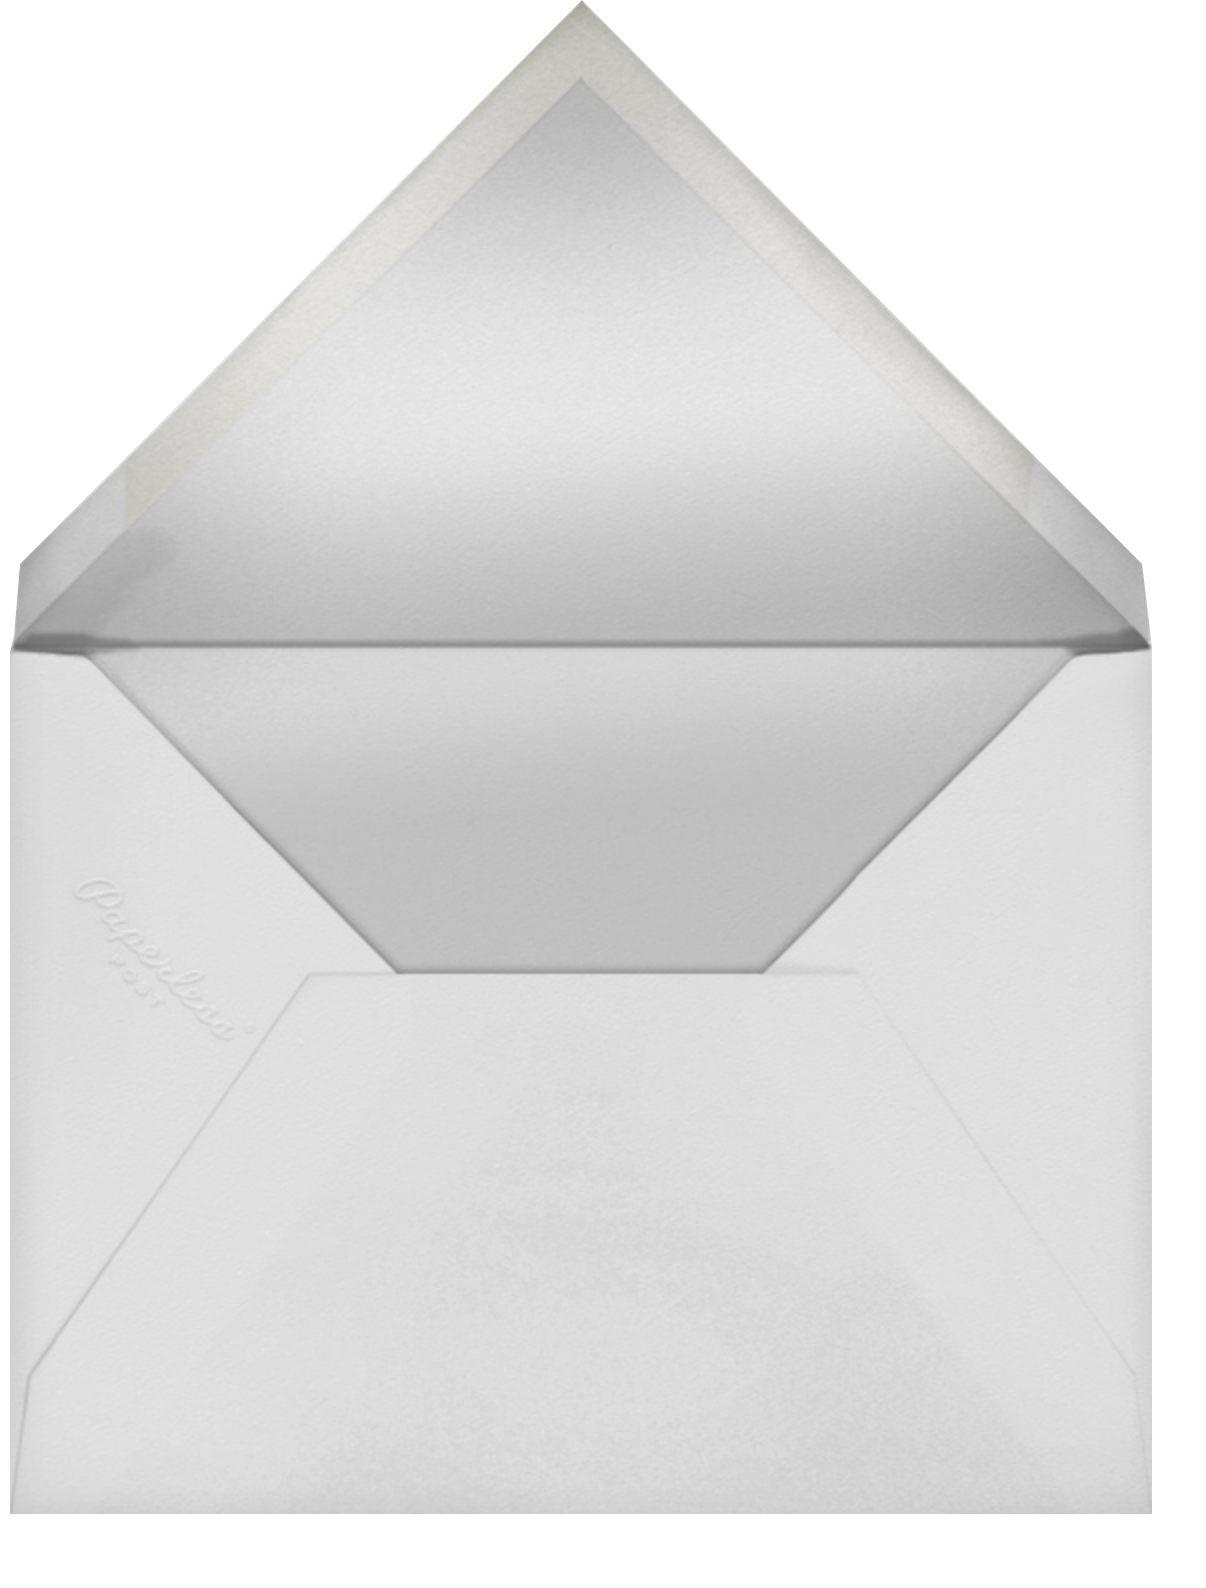 Ando (Menu) - Silver - Paperless Post - Menus - envelope back